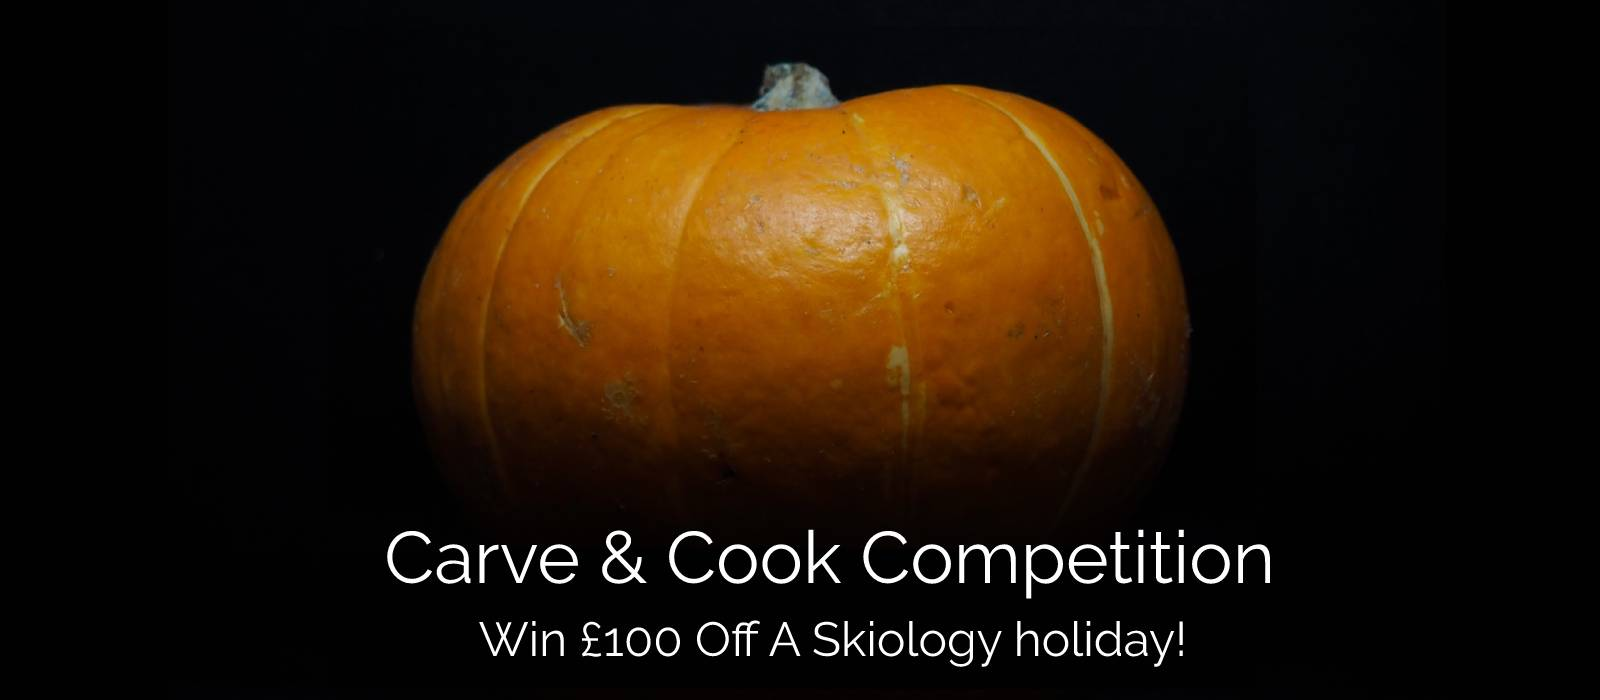 Skiology Halloween pumpkin carve and cook competition